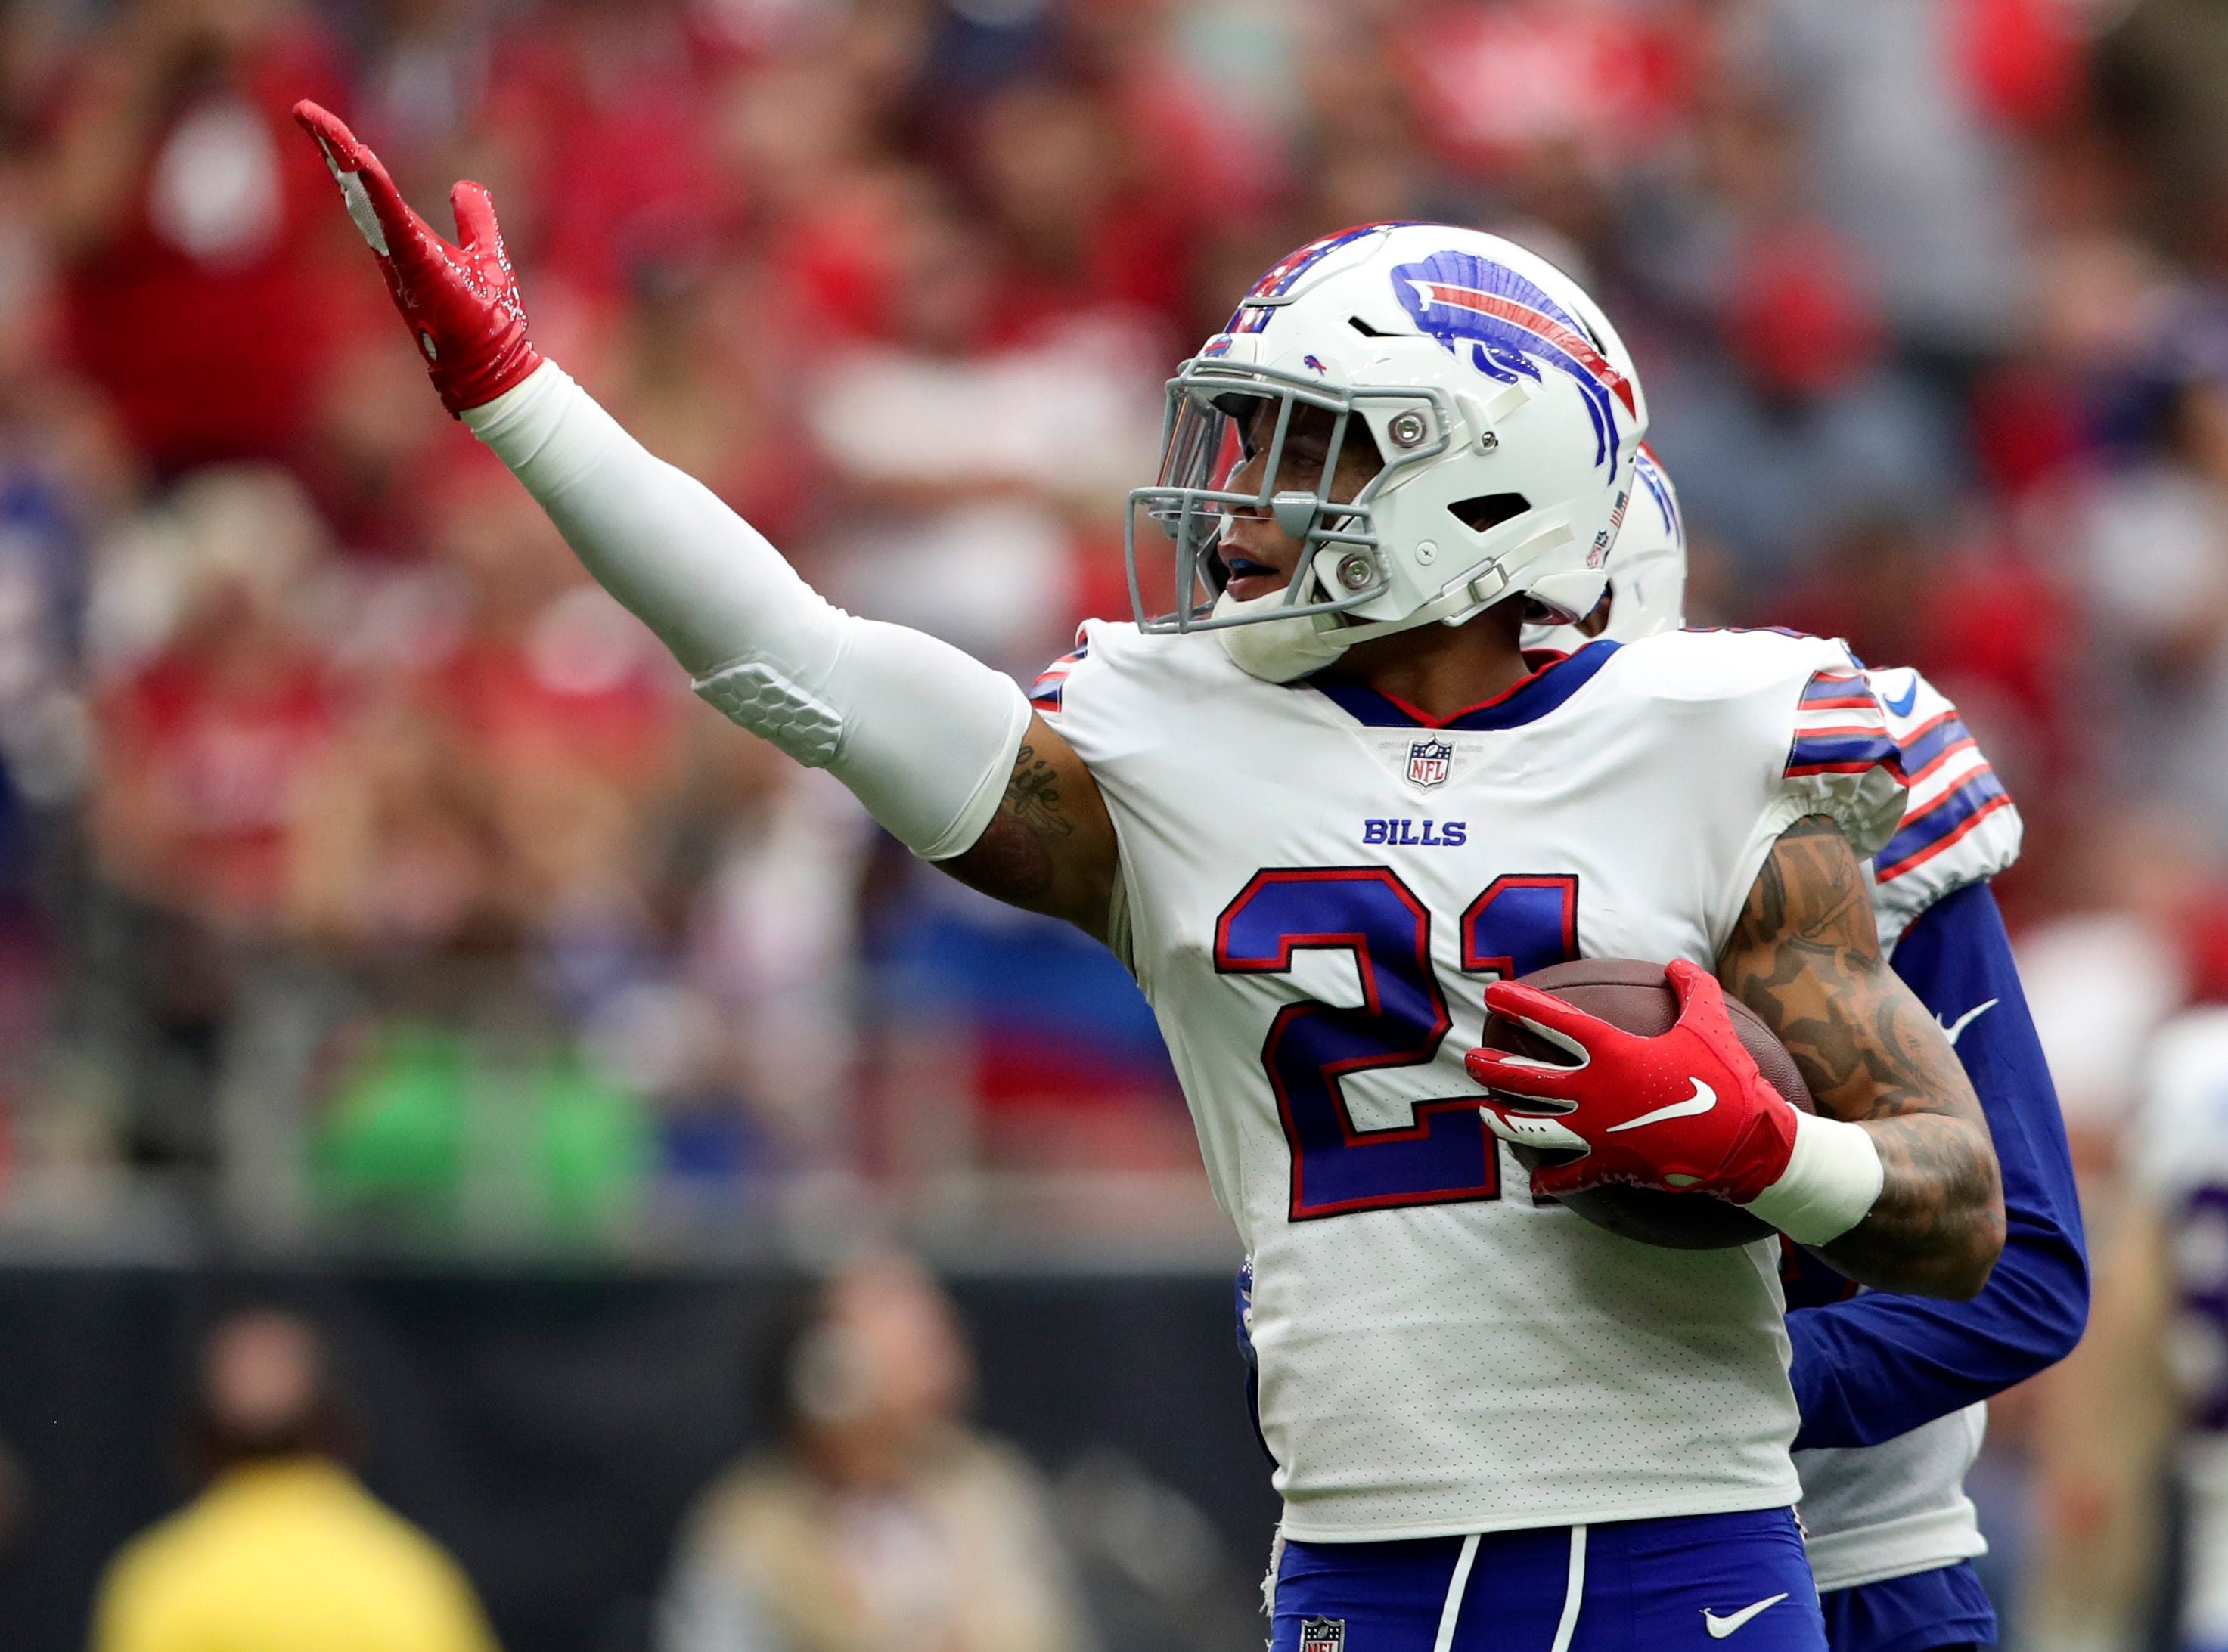 Oct 14, 2018; Houston, TX, USA; Buffalo Bills free safety Jordan Poyer (21) reacts after intercepting a ball during the second quarter against the Houston Texans at NRG Stadium. Mandatory Credit: Kevin Jairaj-USA TODAY Sports